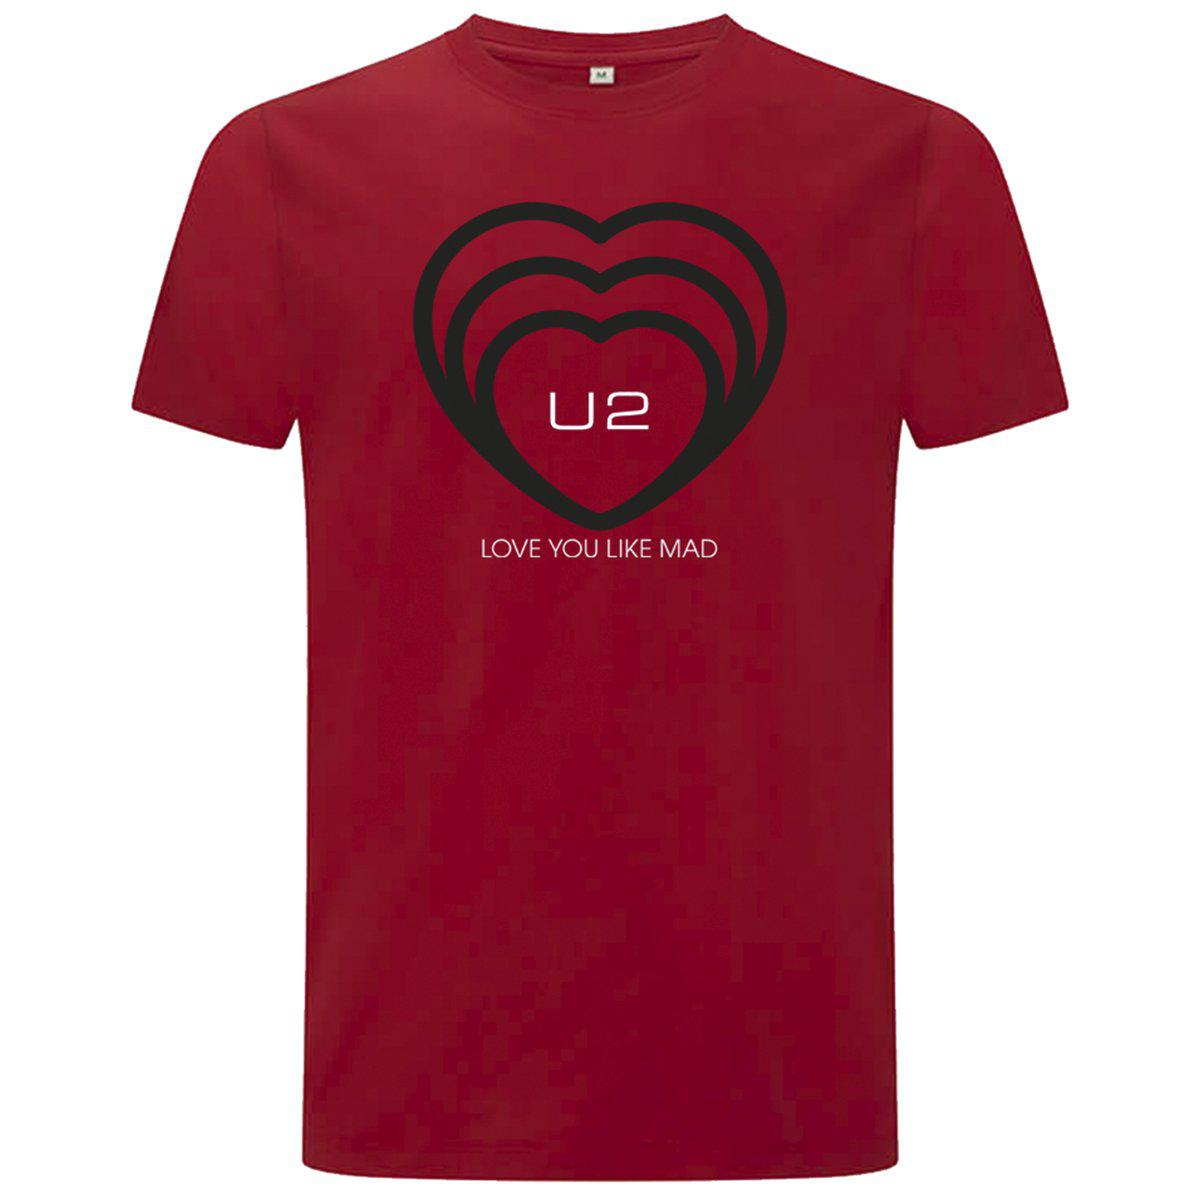 ATYCLB Love You Like Mad Red Tee